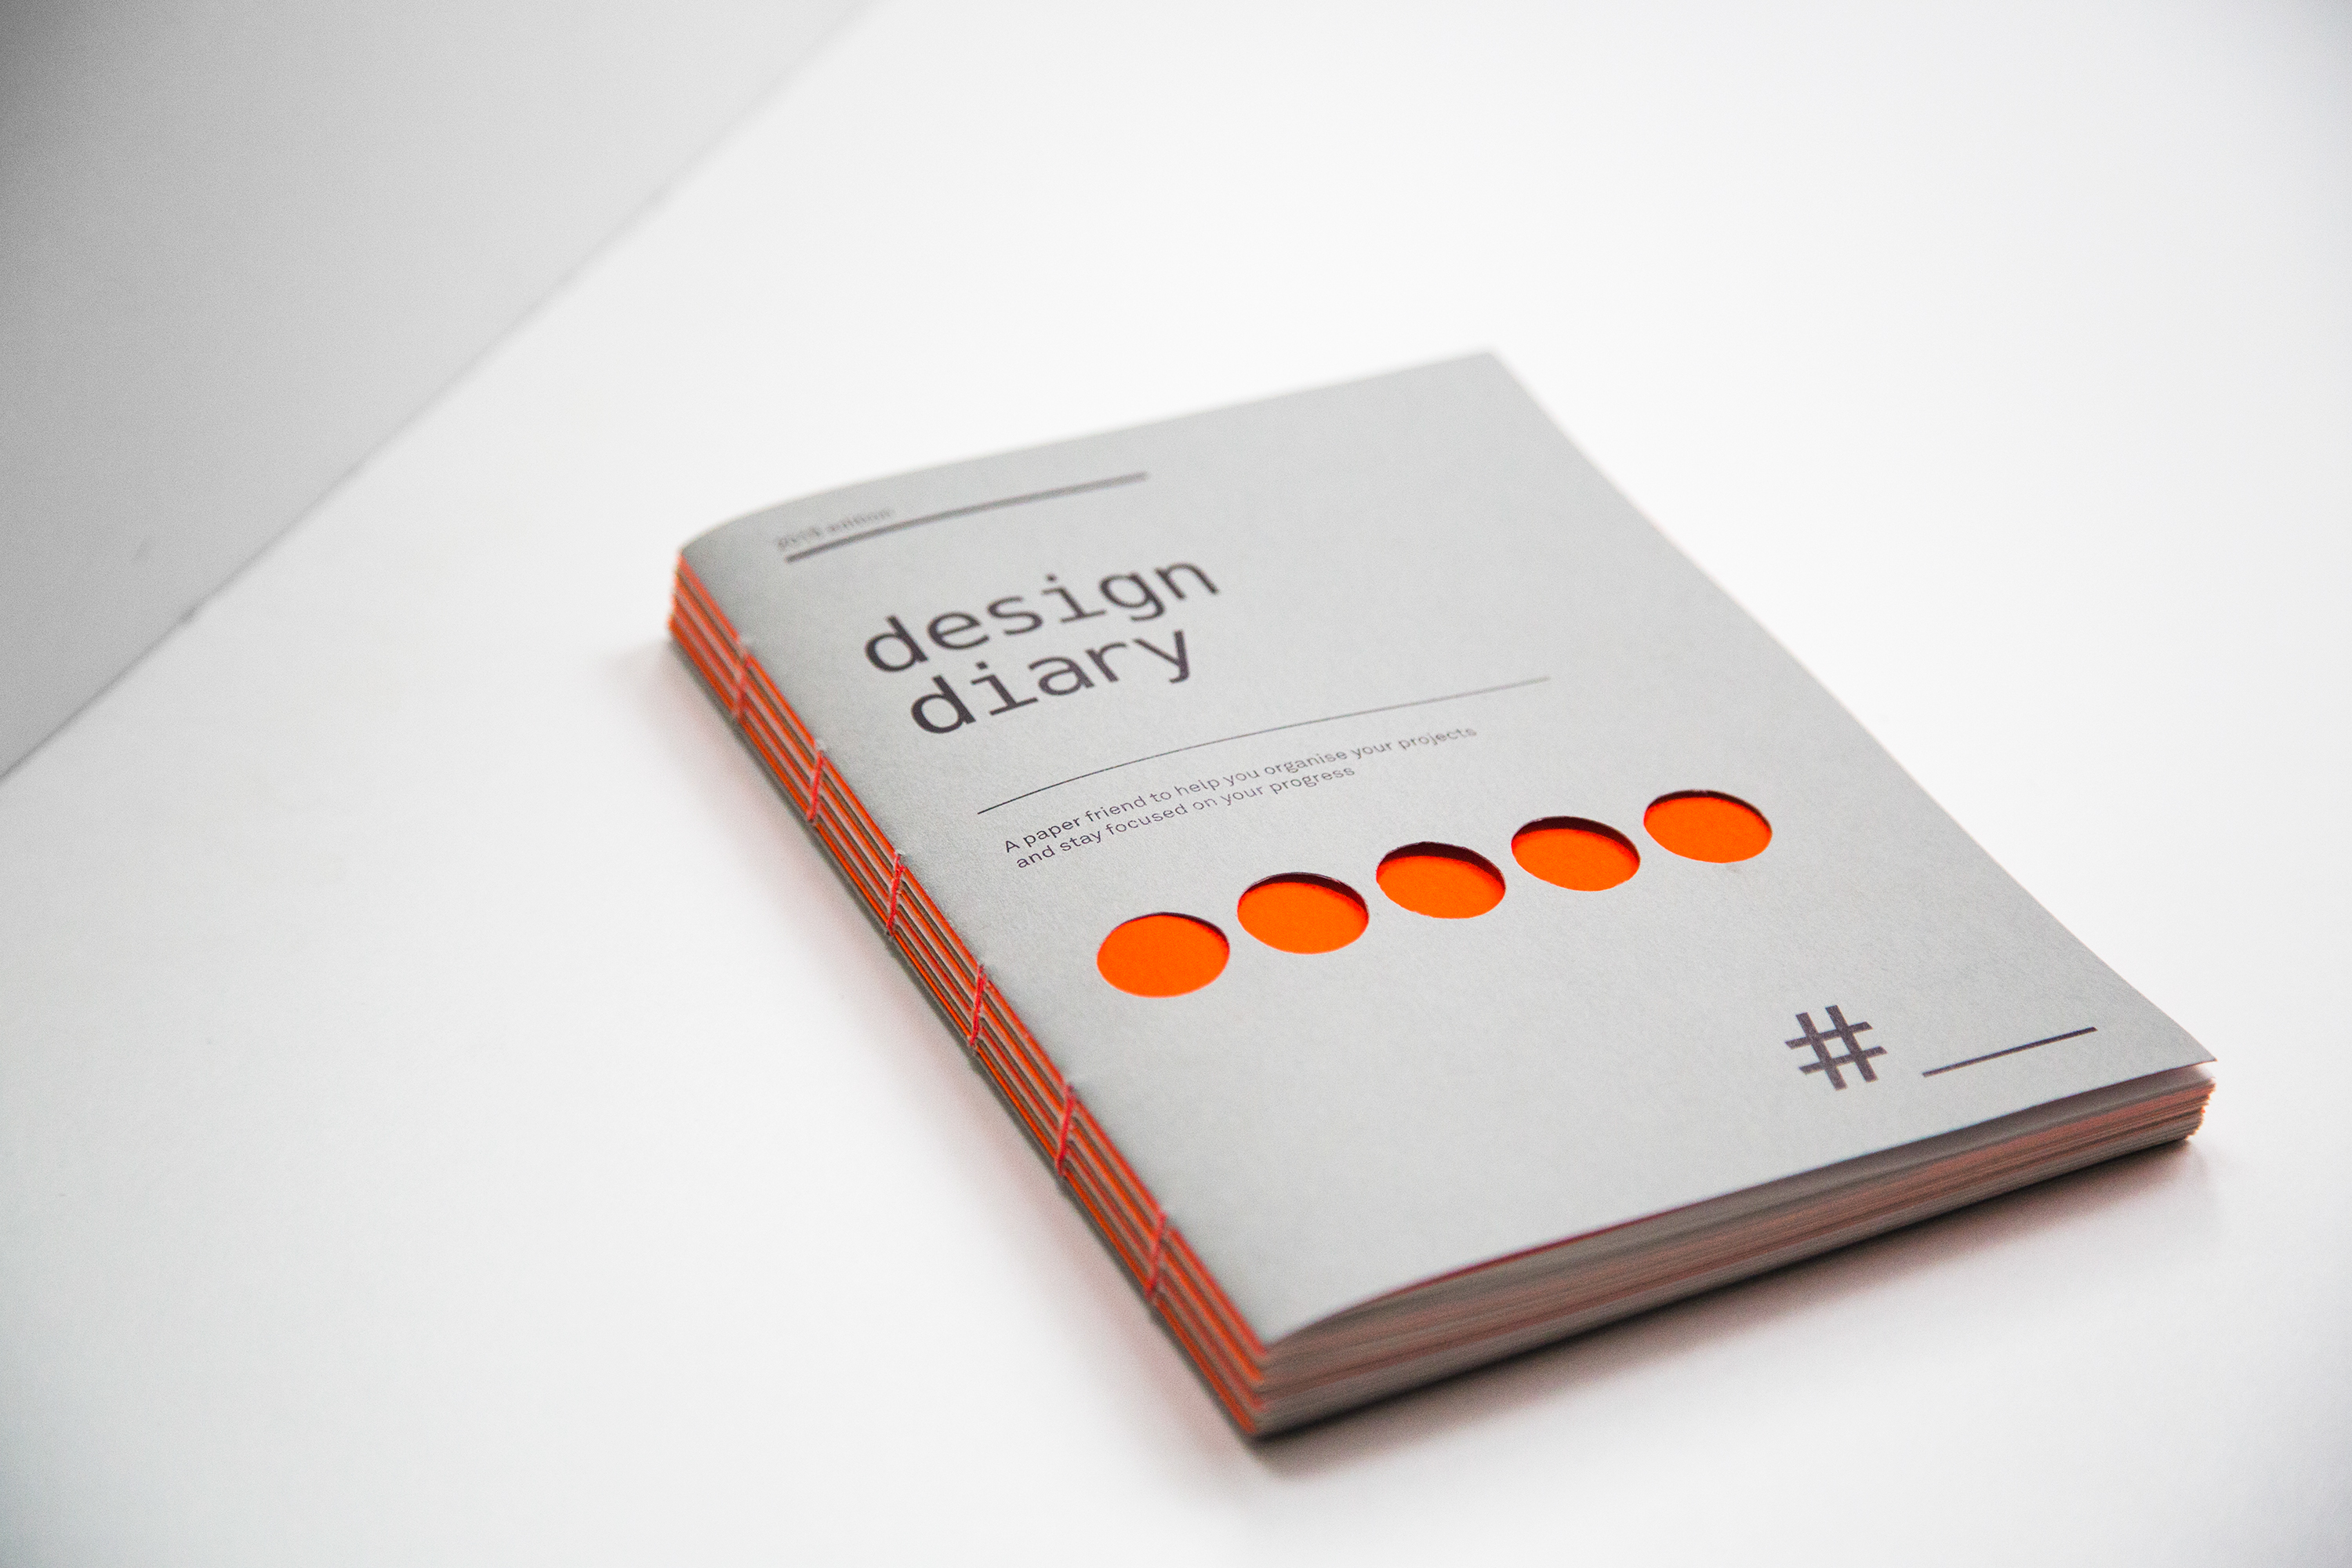 how to design a diary